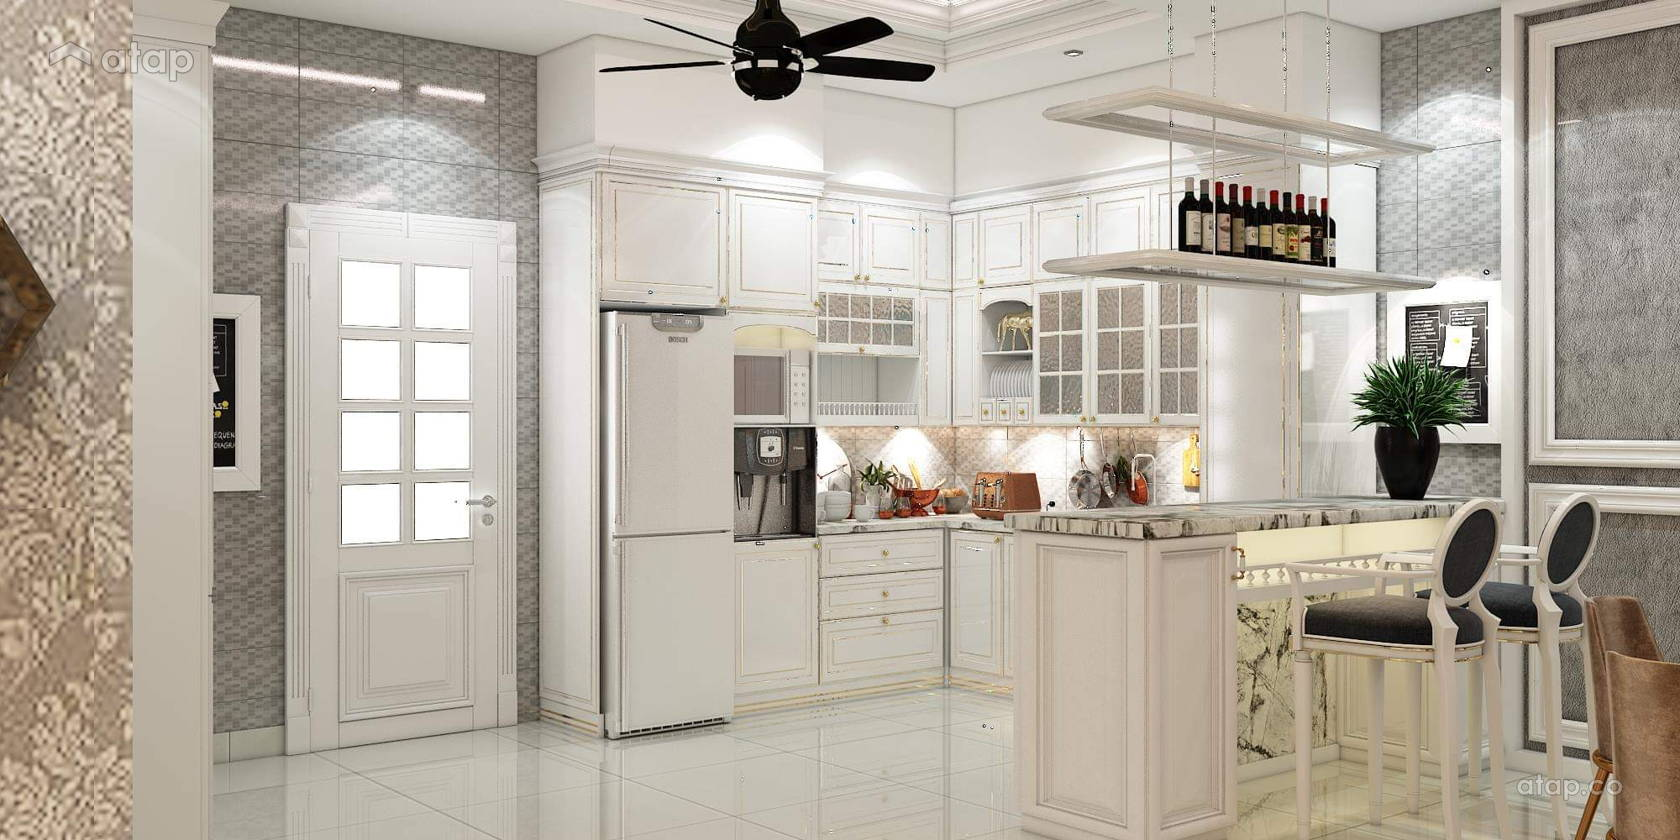 Modern Retro F&B Kitchen semi-detached design ideas & photos ...